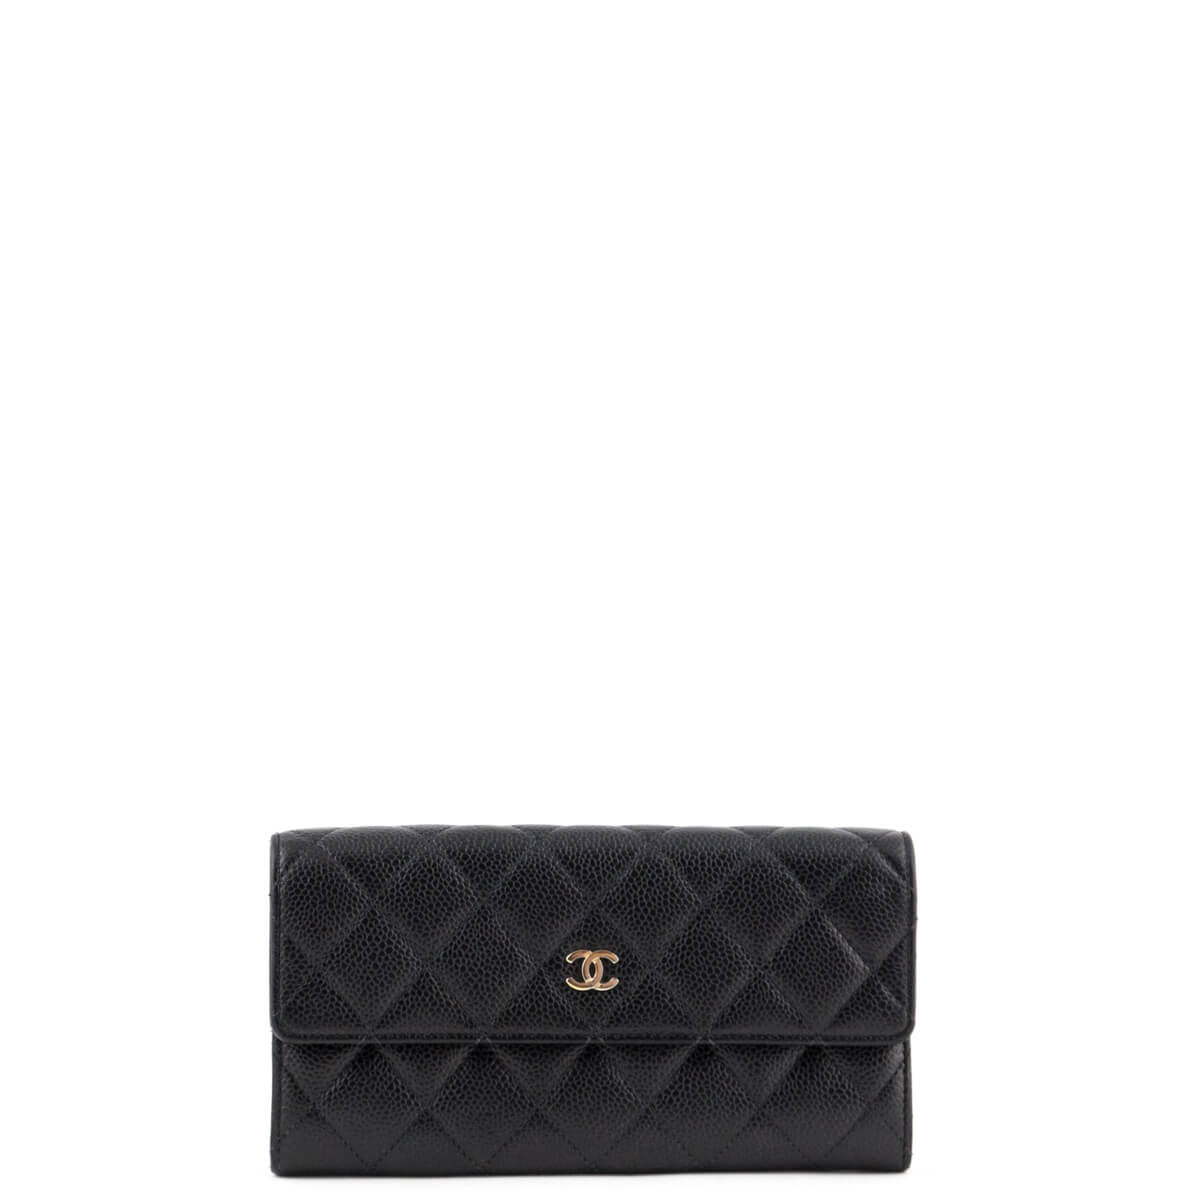 250bc49d2c84 Chanel Black Caviar Quilted Flap Wallet SHW - LOVE that BAG - Preowned  Authentic Designer Handbags ...